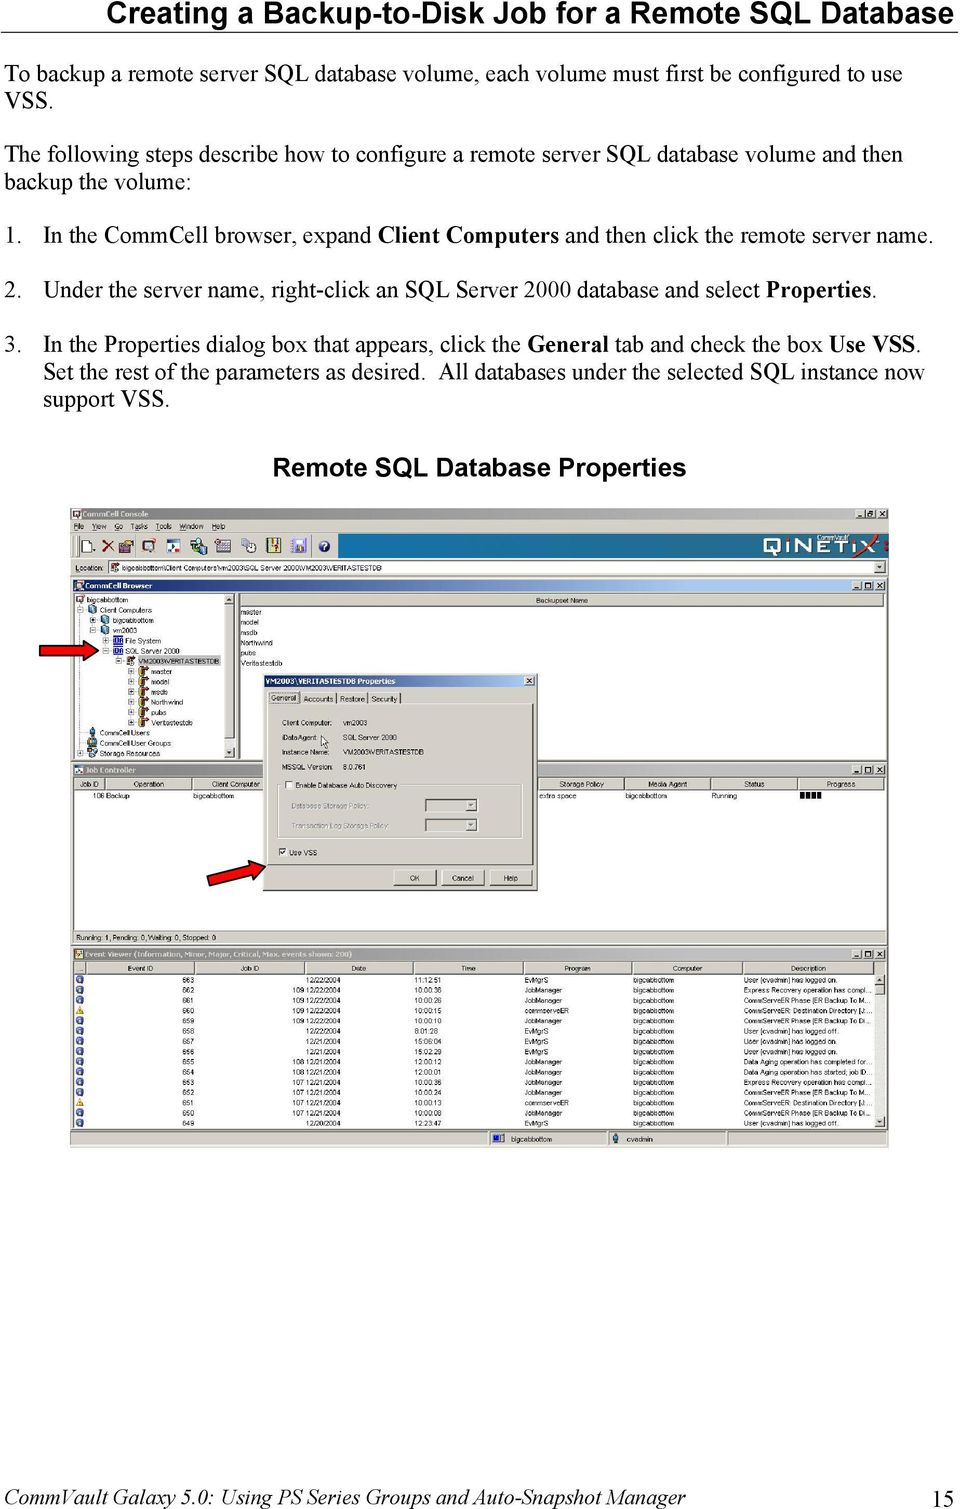 In the CommCell browser, expand Client Computers and then click the remote server name. 2. Under the server name, right-click an SQL Server 2000 database and select Properties. 3.